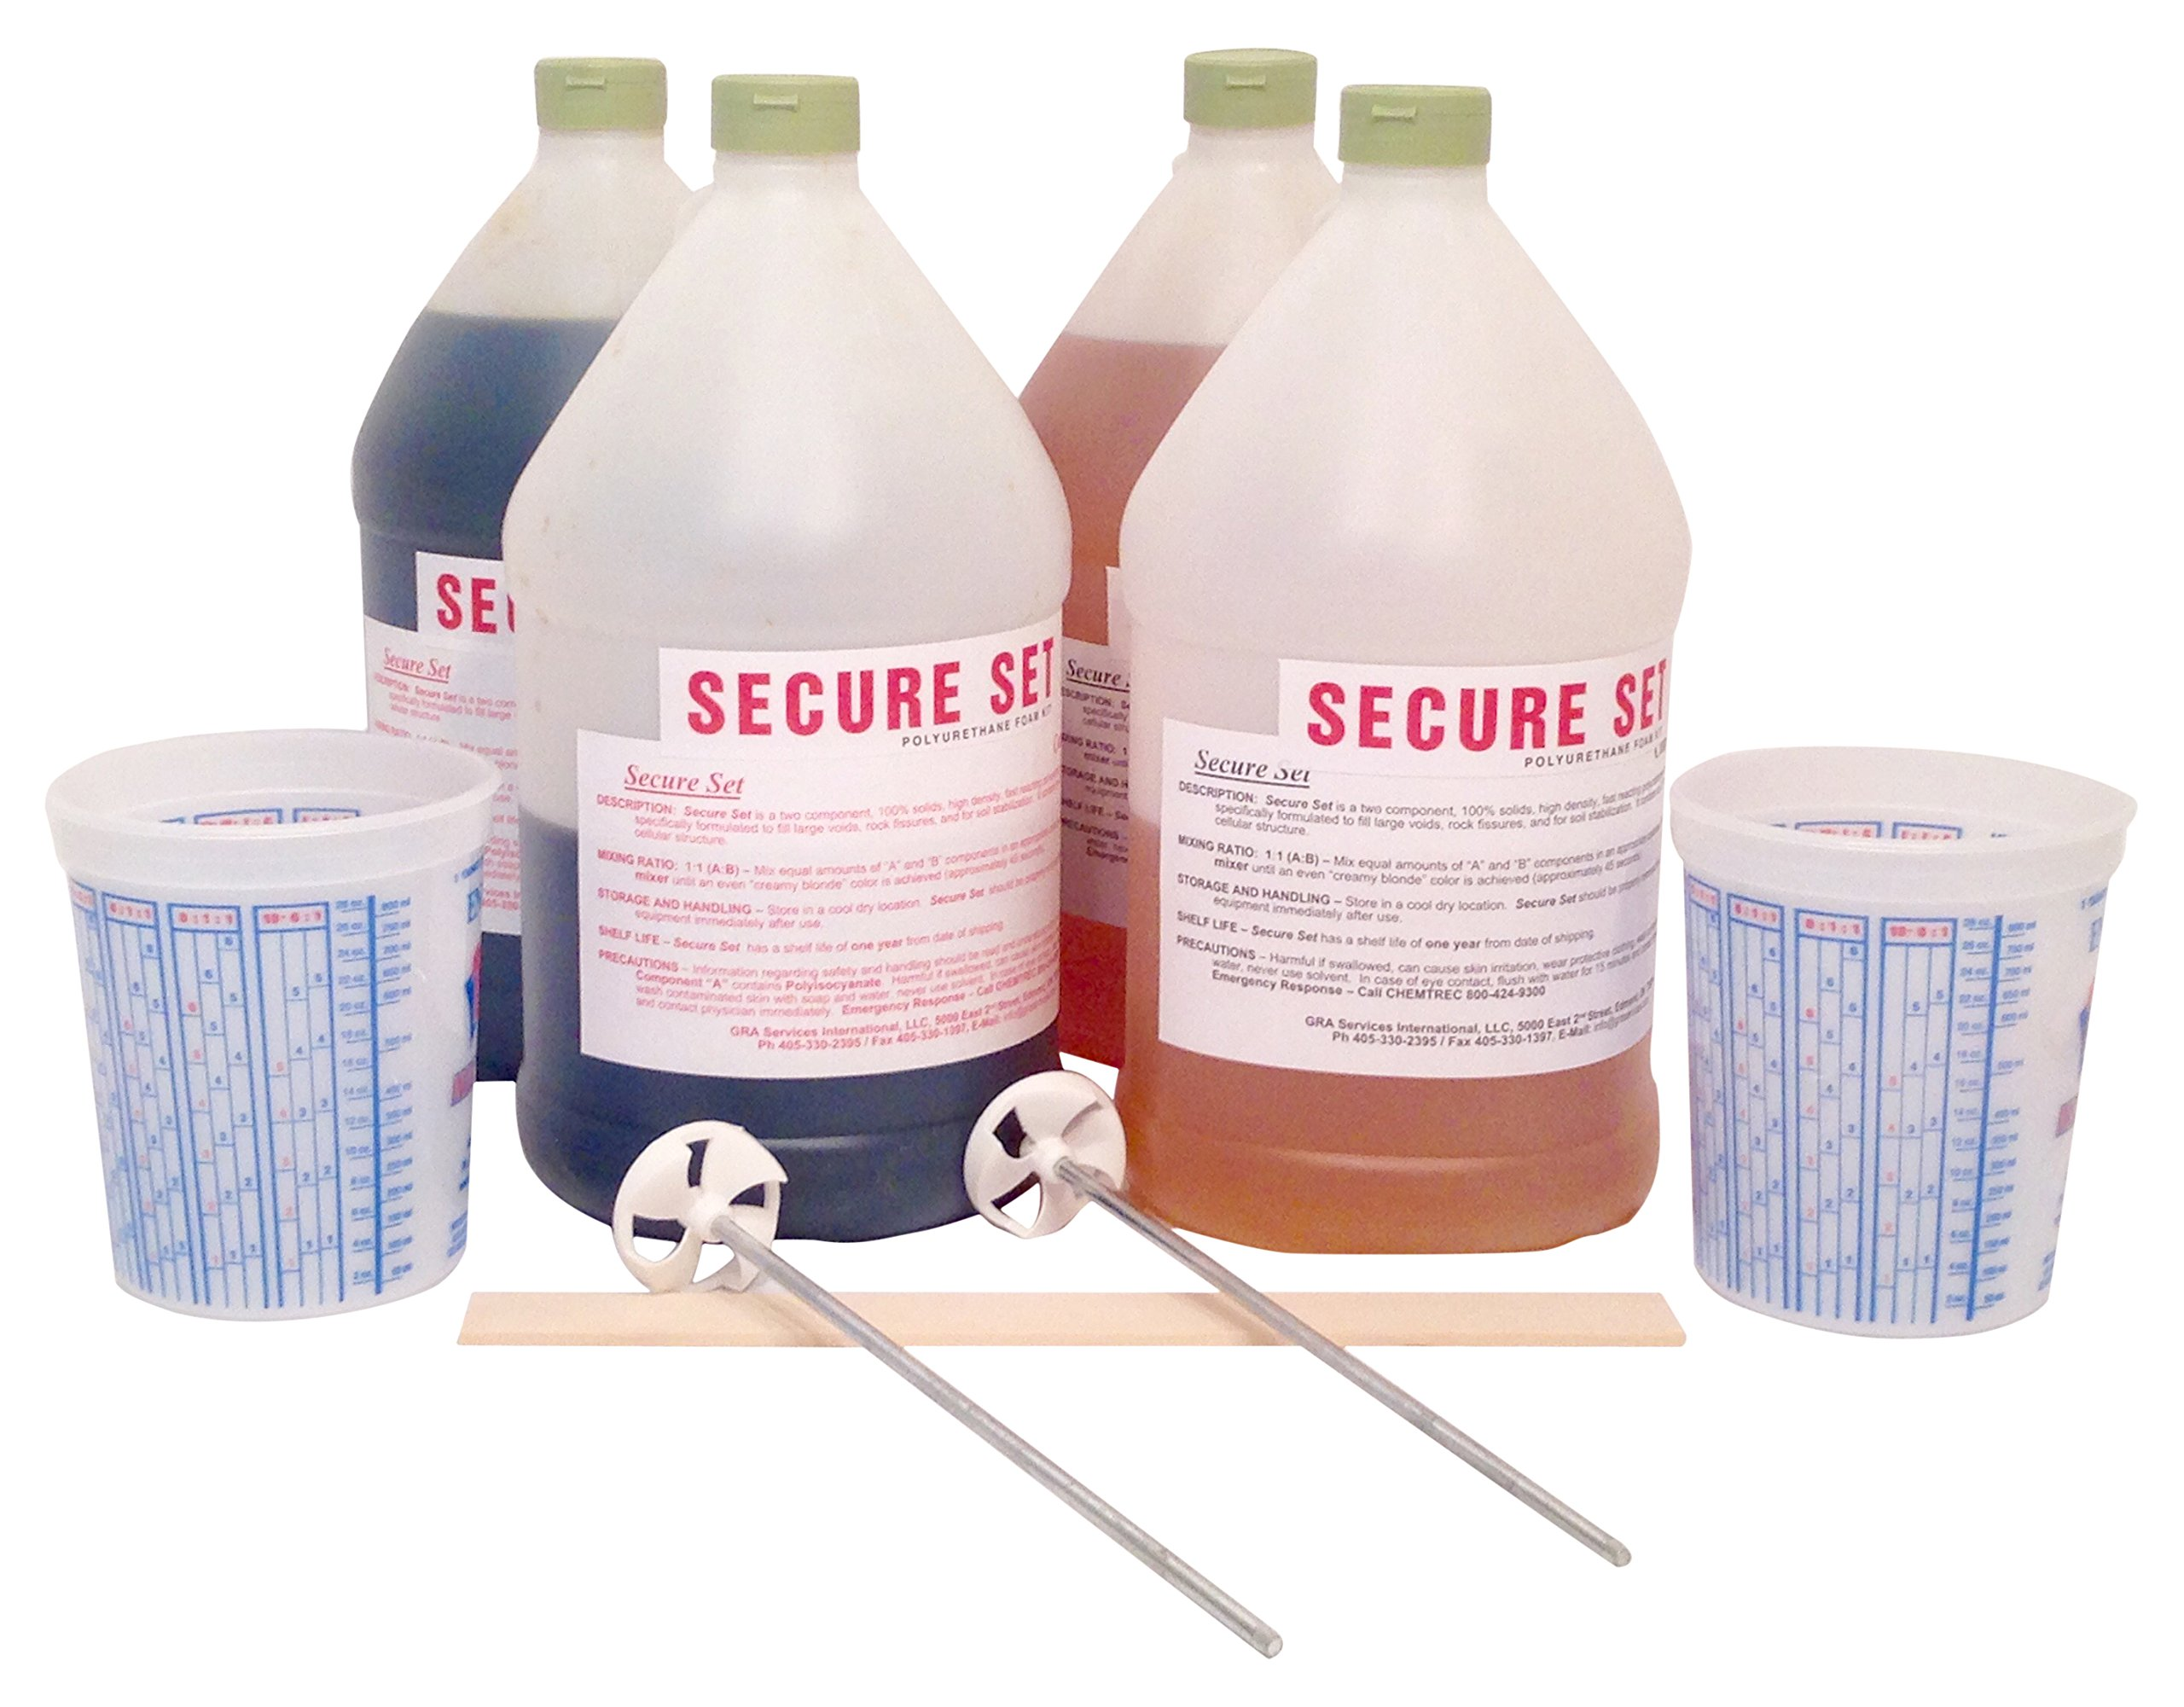 Secure Set - 15 Post Kit. Fast, Secure & Safe Concrete Alternative for Easy Fence Post Installation. Industrial Strength - Size: 3 Gallon